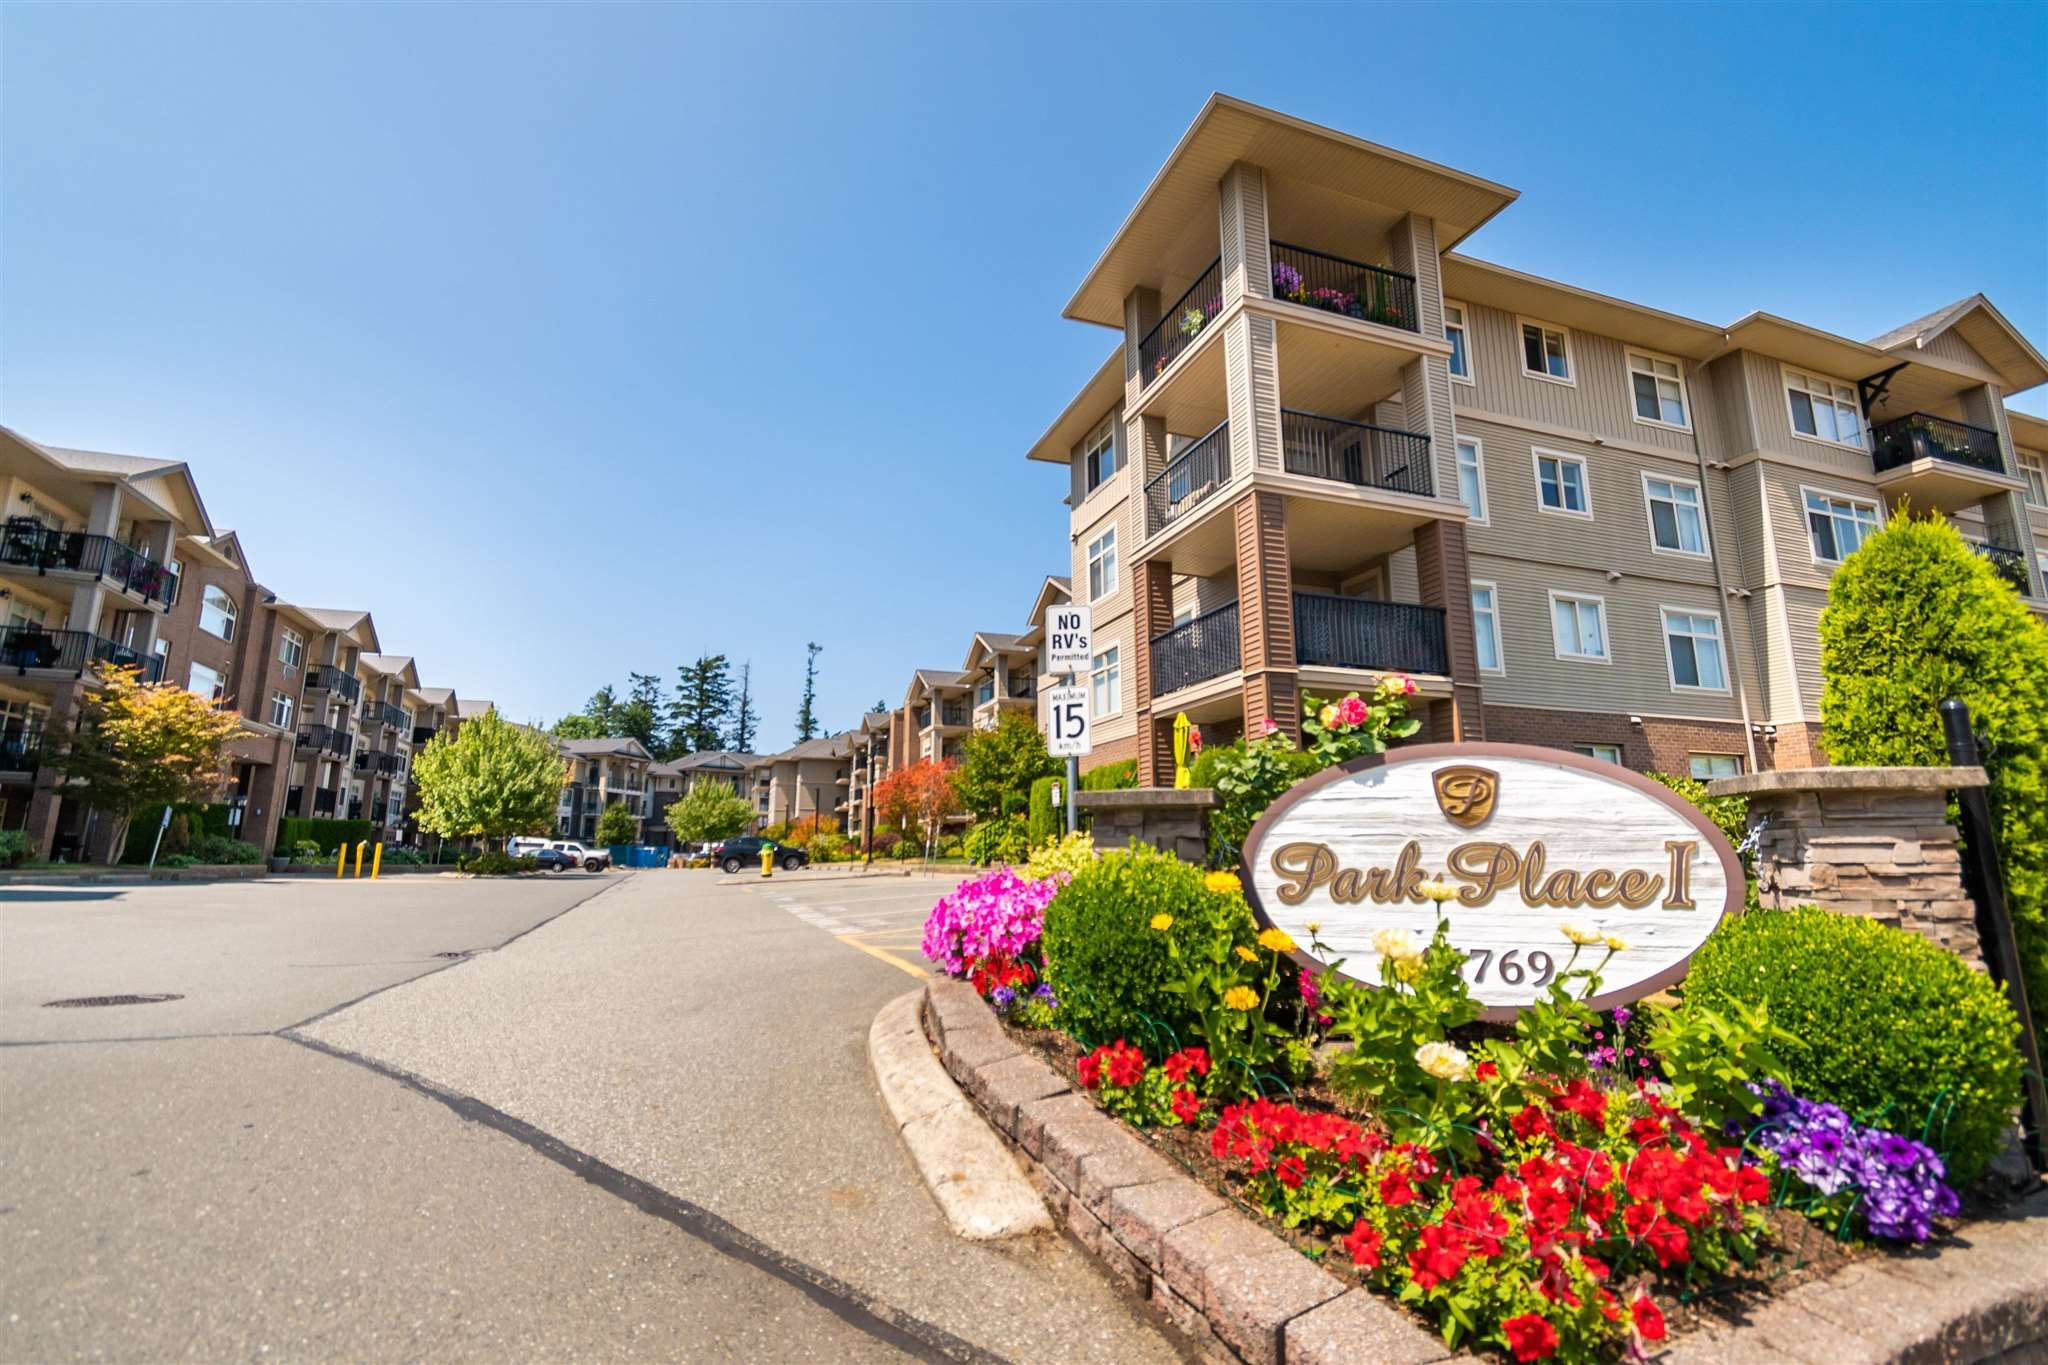 """Main Photo: 315 45769 STEVENSON Road in Chilliwack: Sardis East Vedder Rd Condo for sale in """"Park Place I"""" (Sardis)  : MLS®# R2602356"""